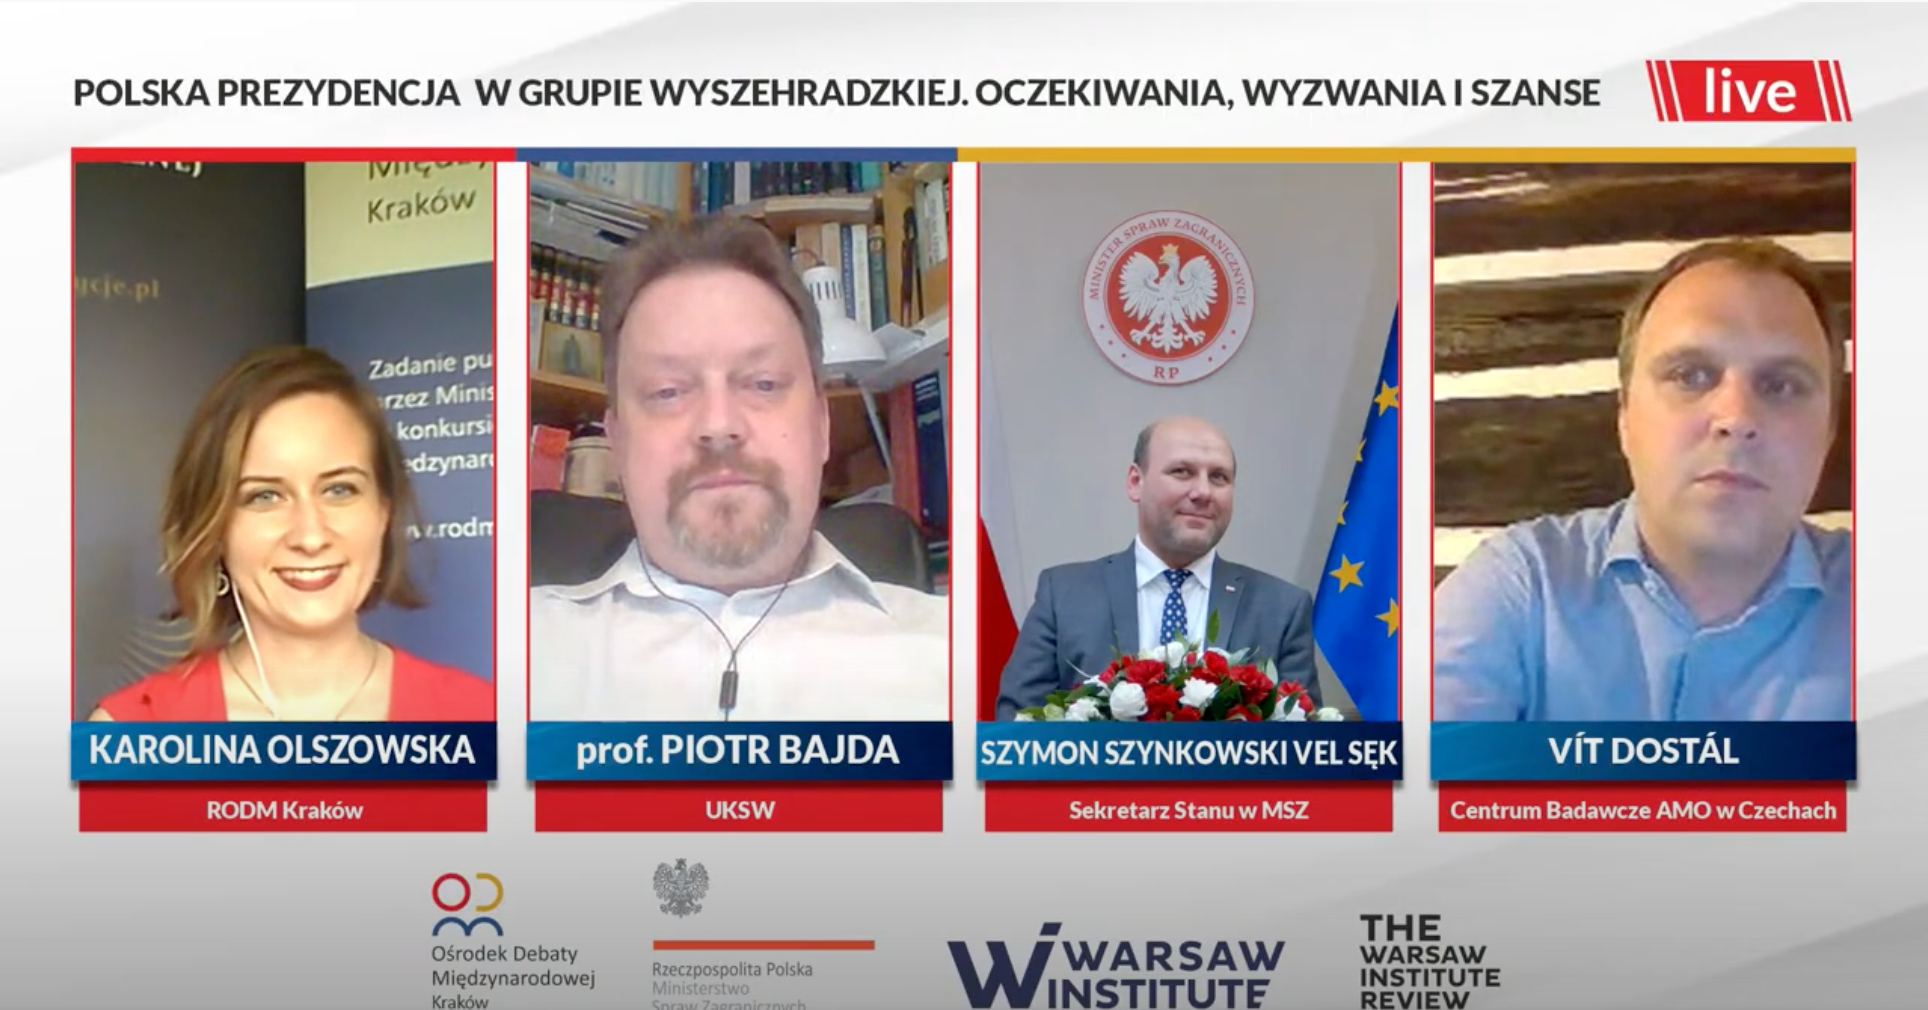 Debate: Polish presidency of the Visegrad Group. Expectations, challenges and opportunities – summary